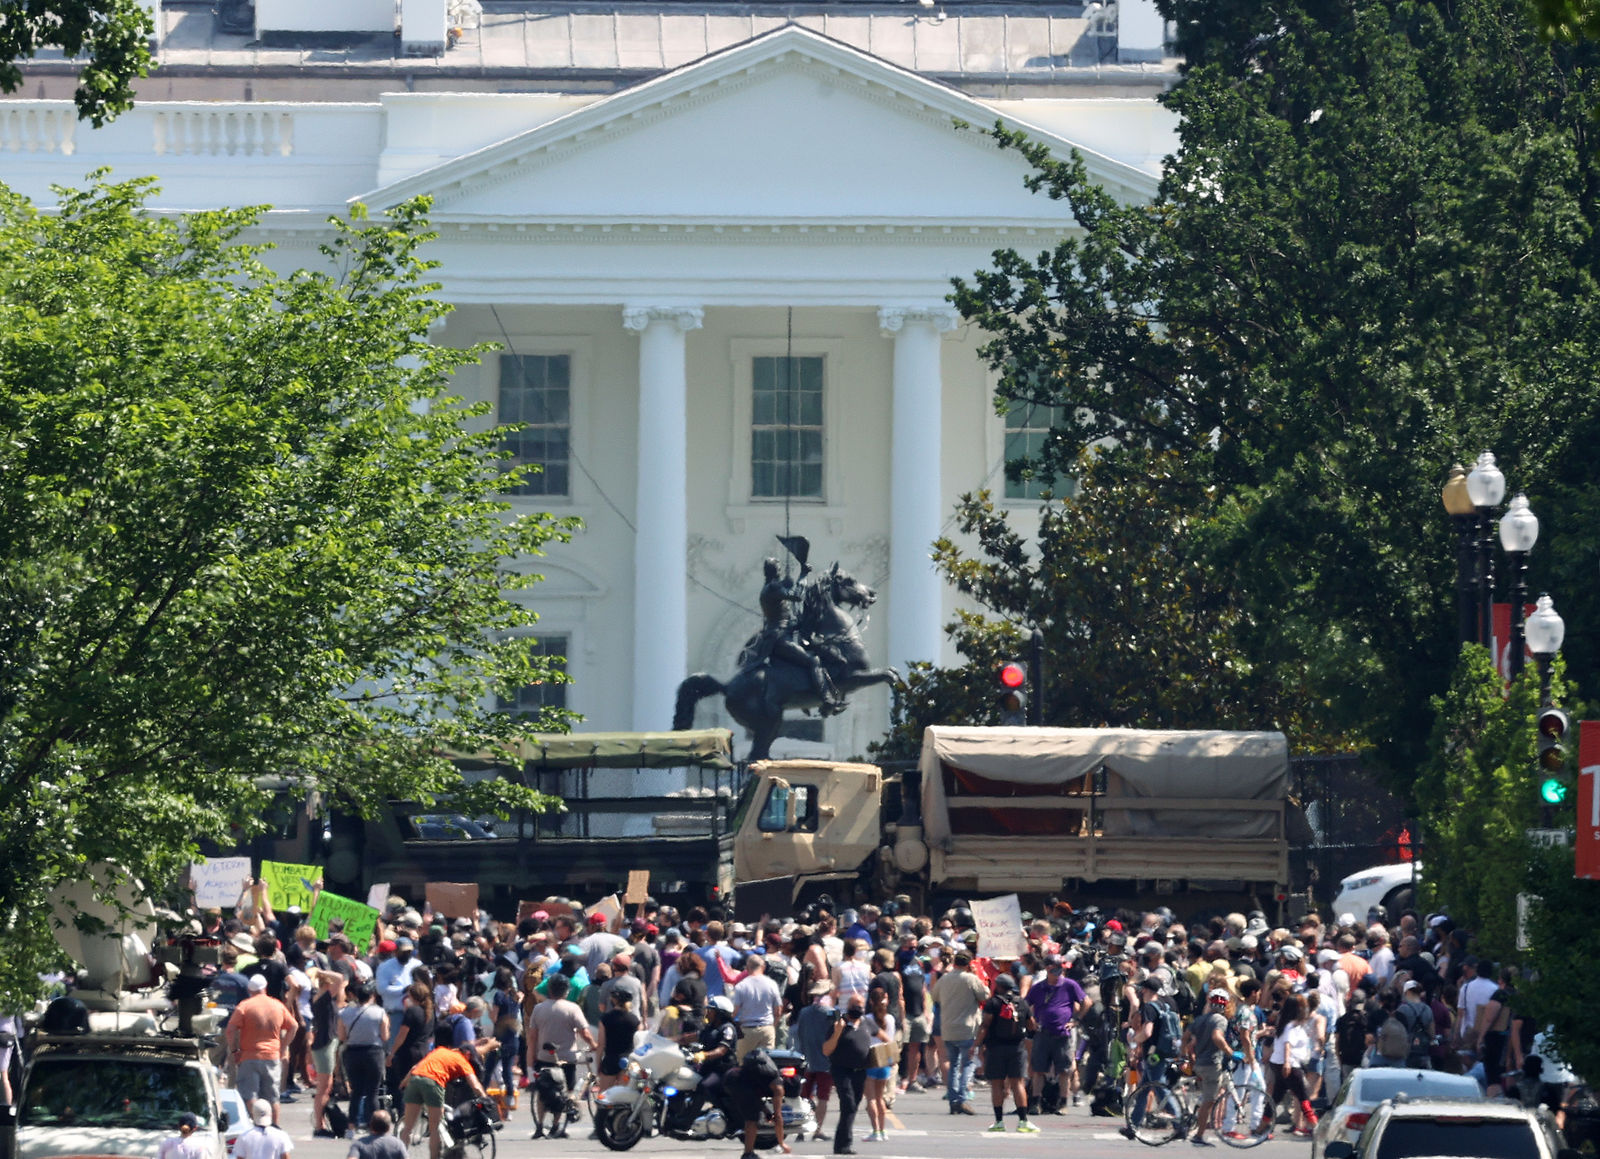 WASHINGTON, DC - JUNE 03: D.C. National Guard vehicles are used to block 16th Street near Lafayette Park and the White House as while people participate in a peaceful protest against police brutality and the death of George Floyd, on June 3, 2020 in Washington, DC. Protests in cities throughout the country have been largely peaceful in the wake of the death of George Floyd, a black man who was killed in police custody in Minneapolis on May 25.  (Photo by Win McNamee/Getty Images)